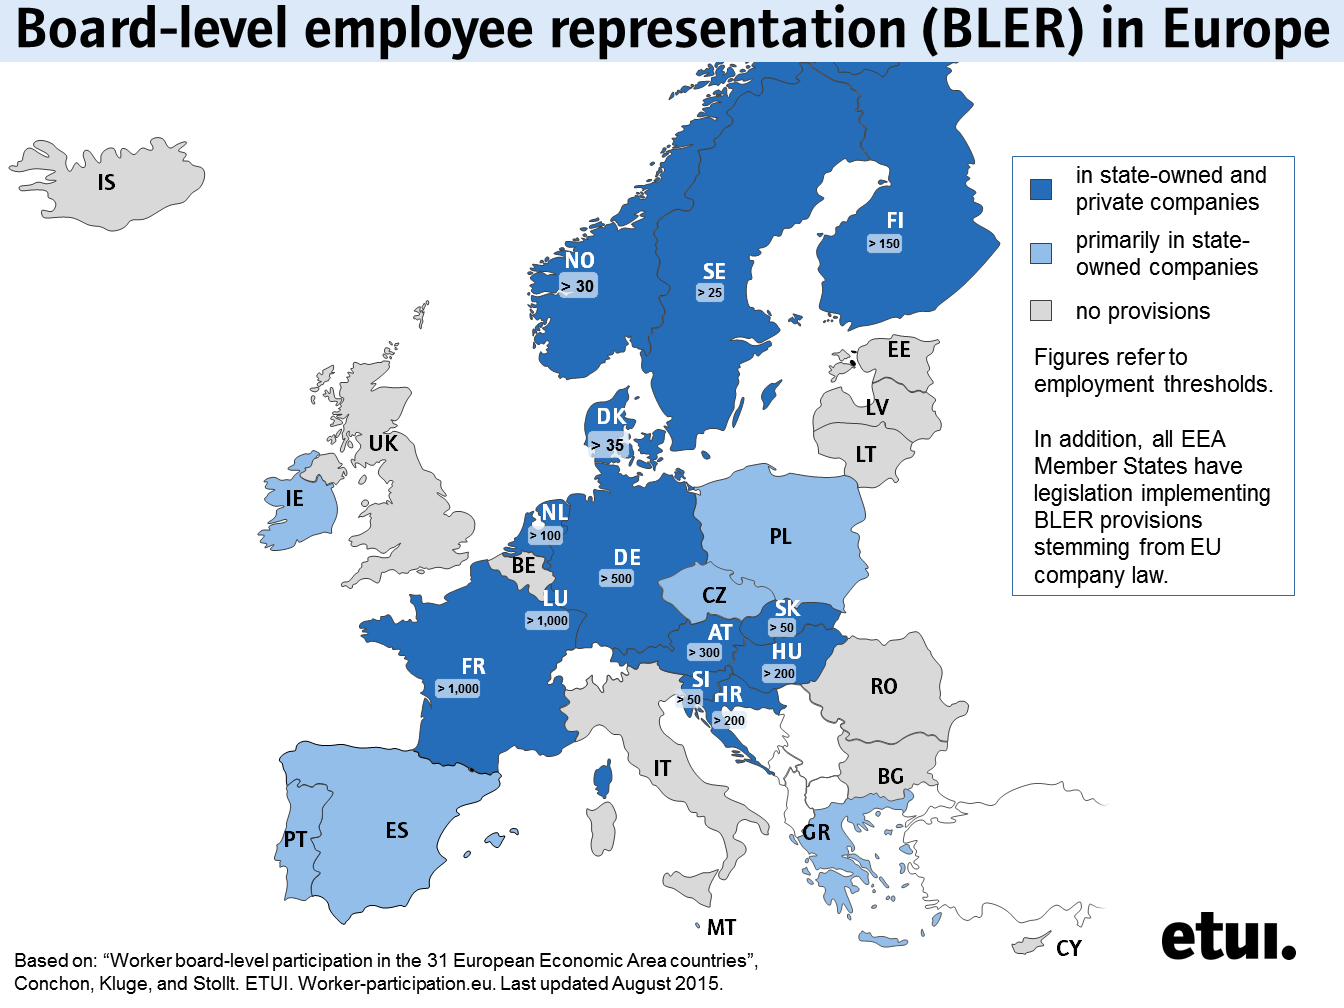 Whats new ber wp home worker participation the etui has updated its map on board level employee representation in europe which now provides the latest state of affairs in europe and thresholds in publicscrutiny Images